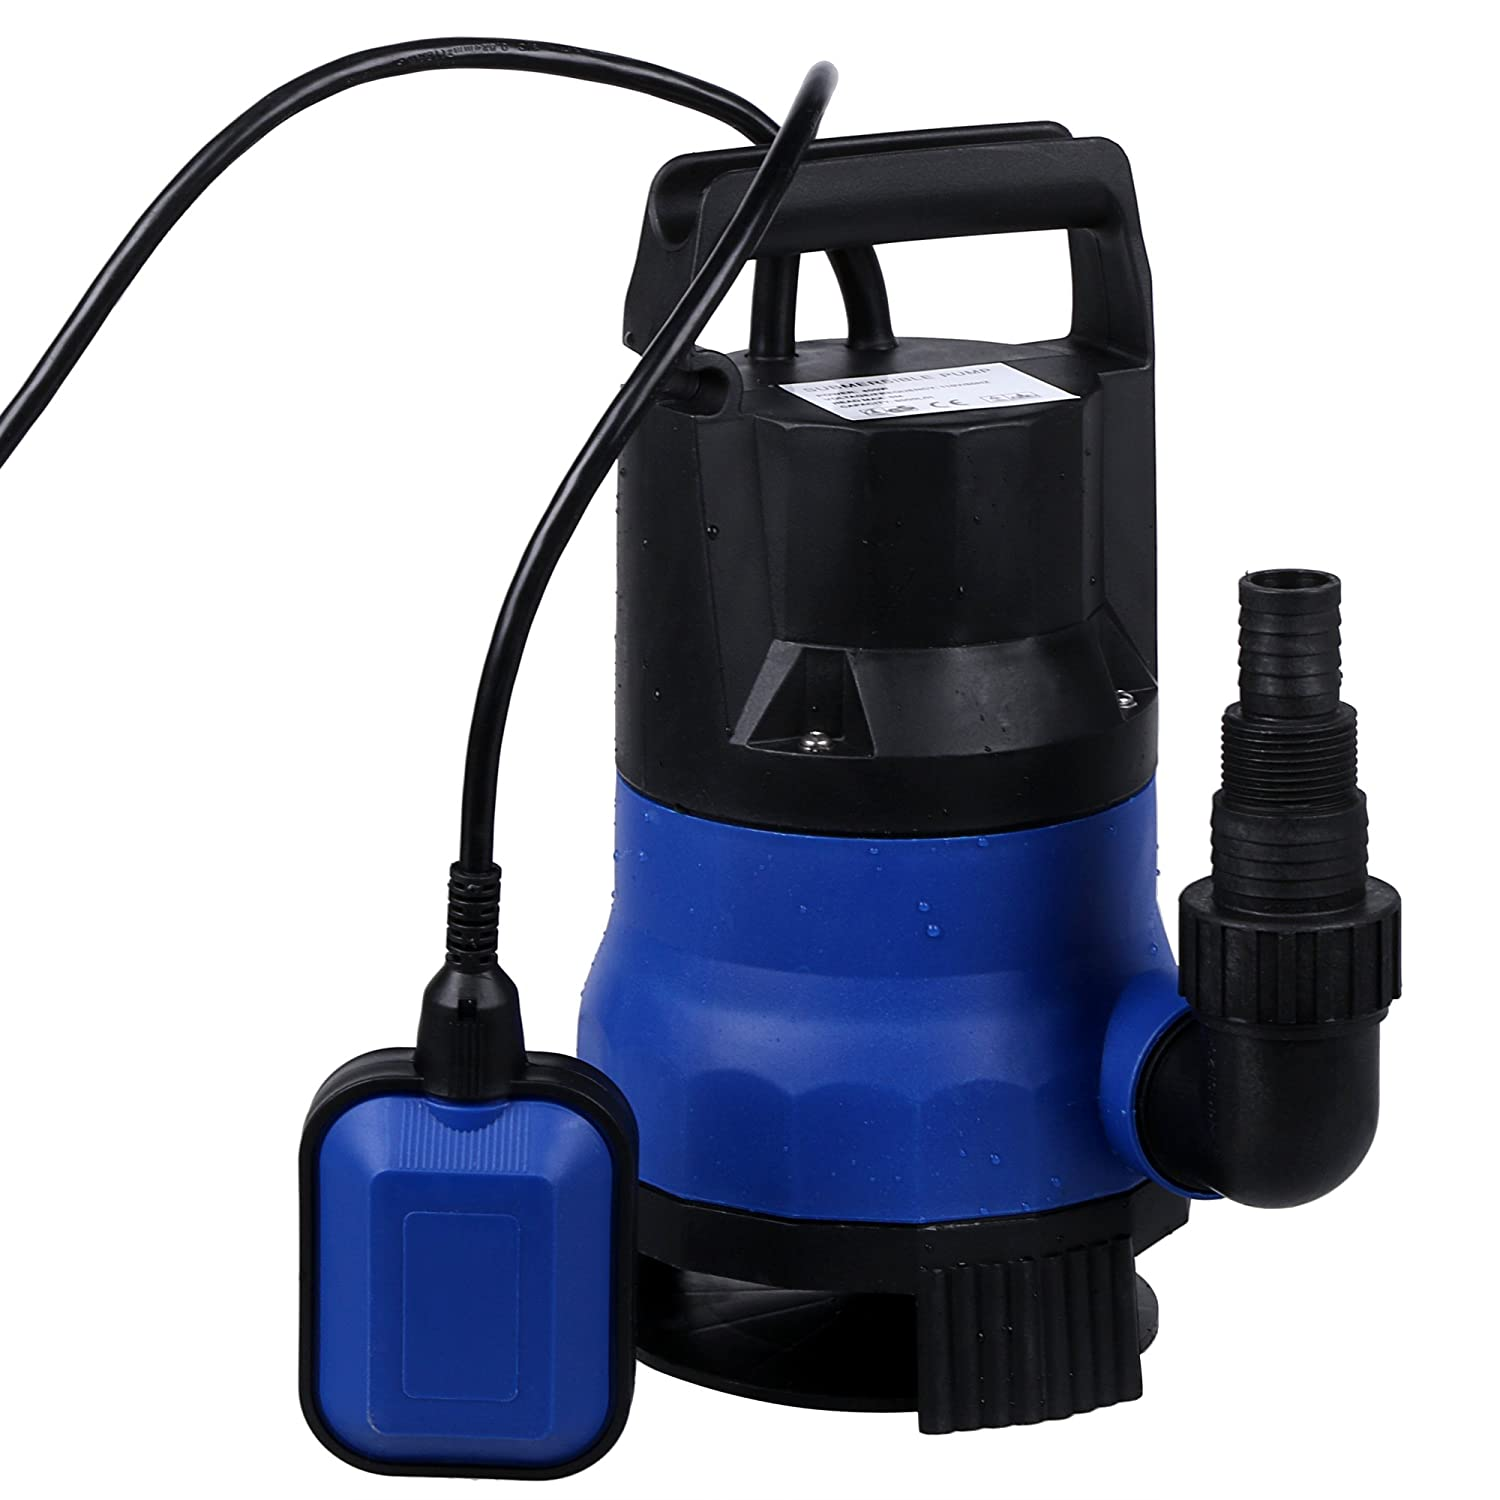 Ruyiot Sump Pump 1/2HP Submersible Clean Dirty Water Pump For Swimming Pool Drain (Blue)